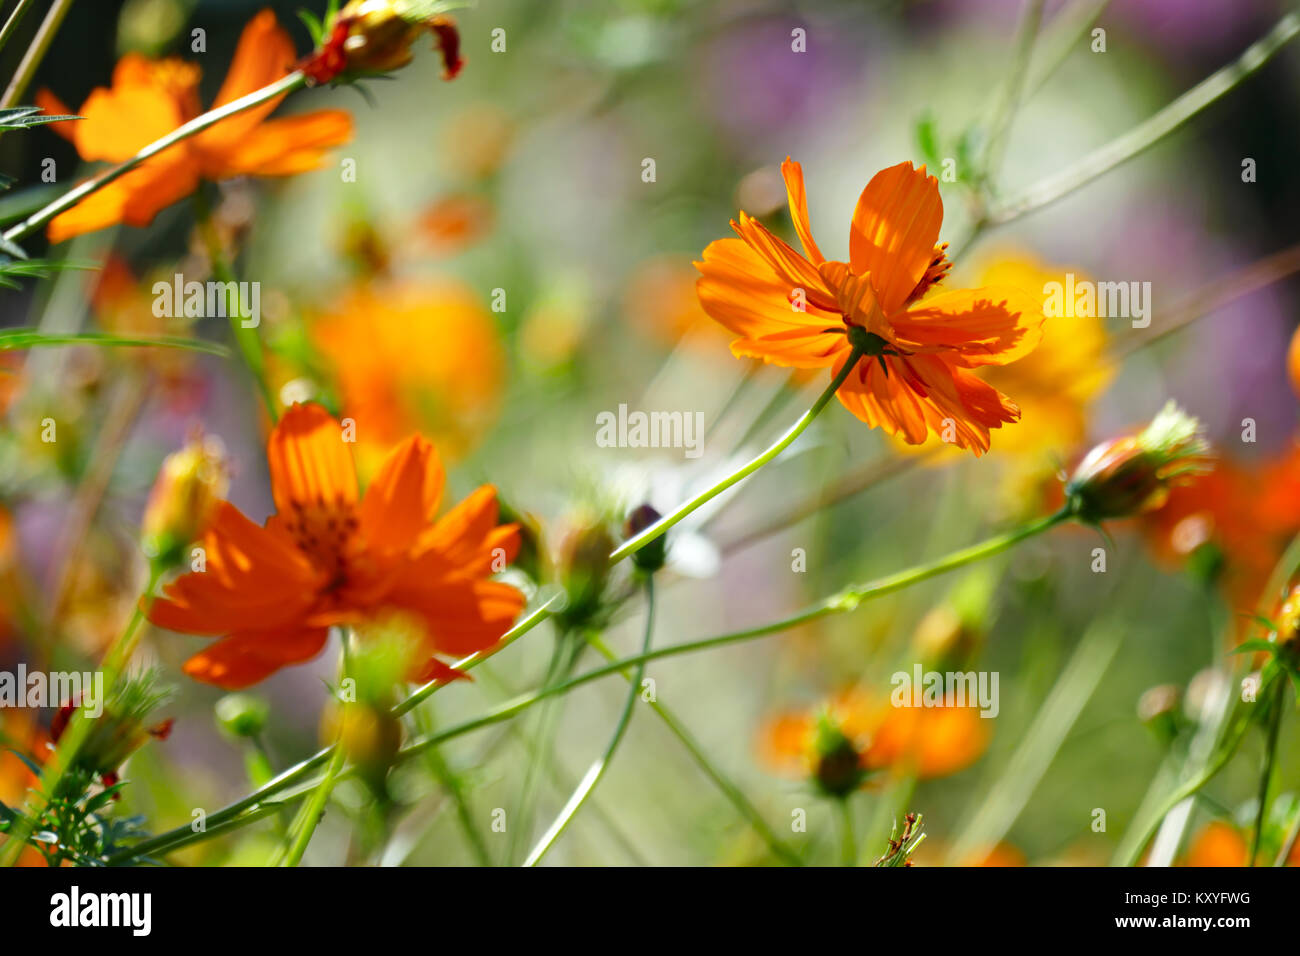 Bright orange flowers violets on the summer flowerbed. Soft focus. Blurring background. - Stock Image